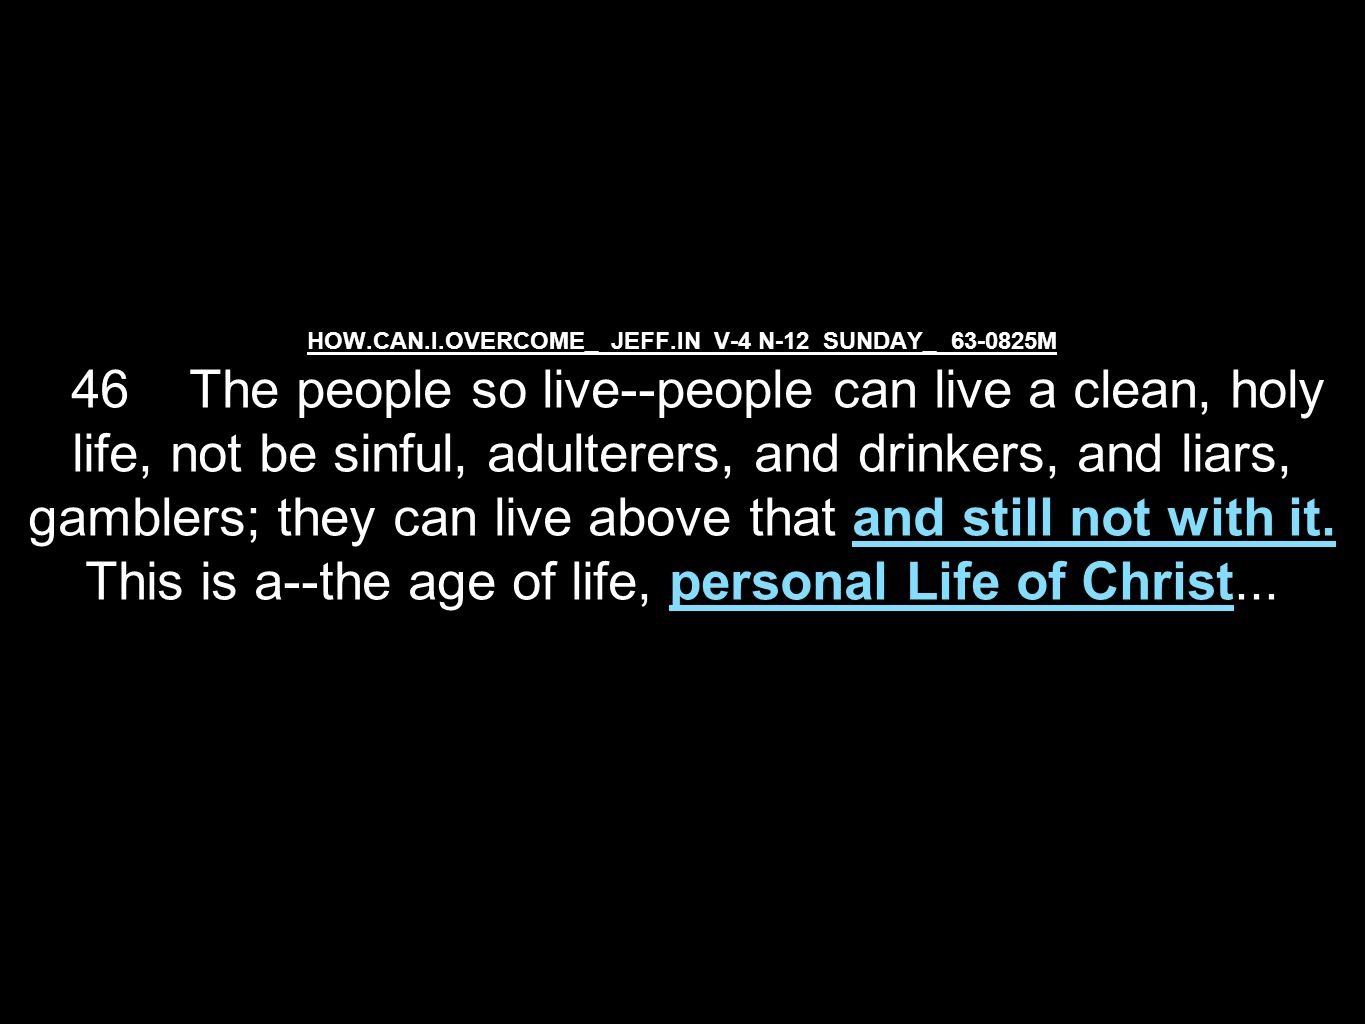 HOW.CAN.I.OVERCOME_ JEFF.IN V-4 N-12 SUNDAY_ 63-0825M 46 The people so live--people can live a clean, holy life, not be sinful, adulterers, and drinkers, and liars, gamblers; they can live above that and still not with it.